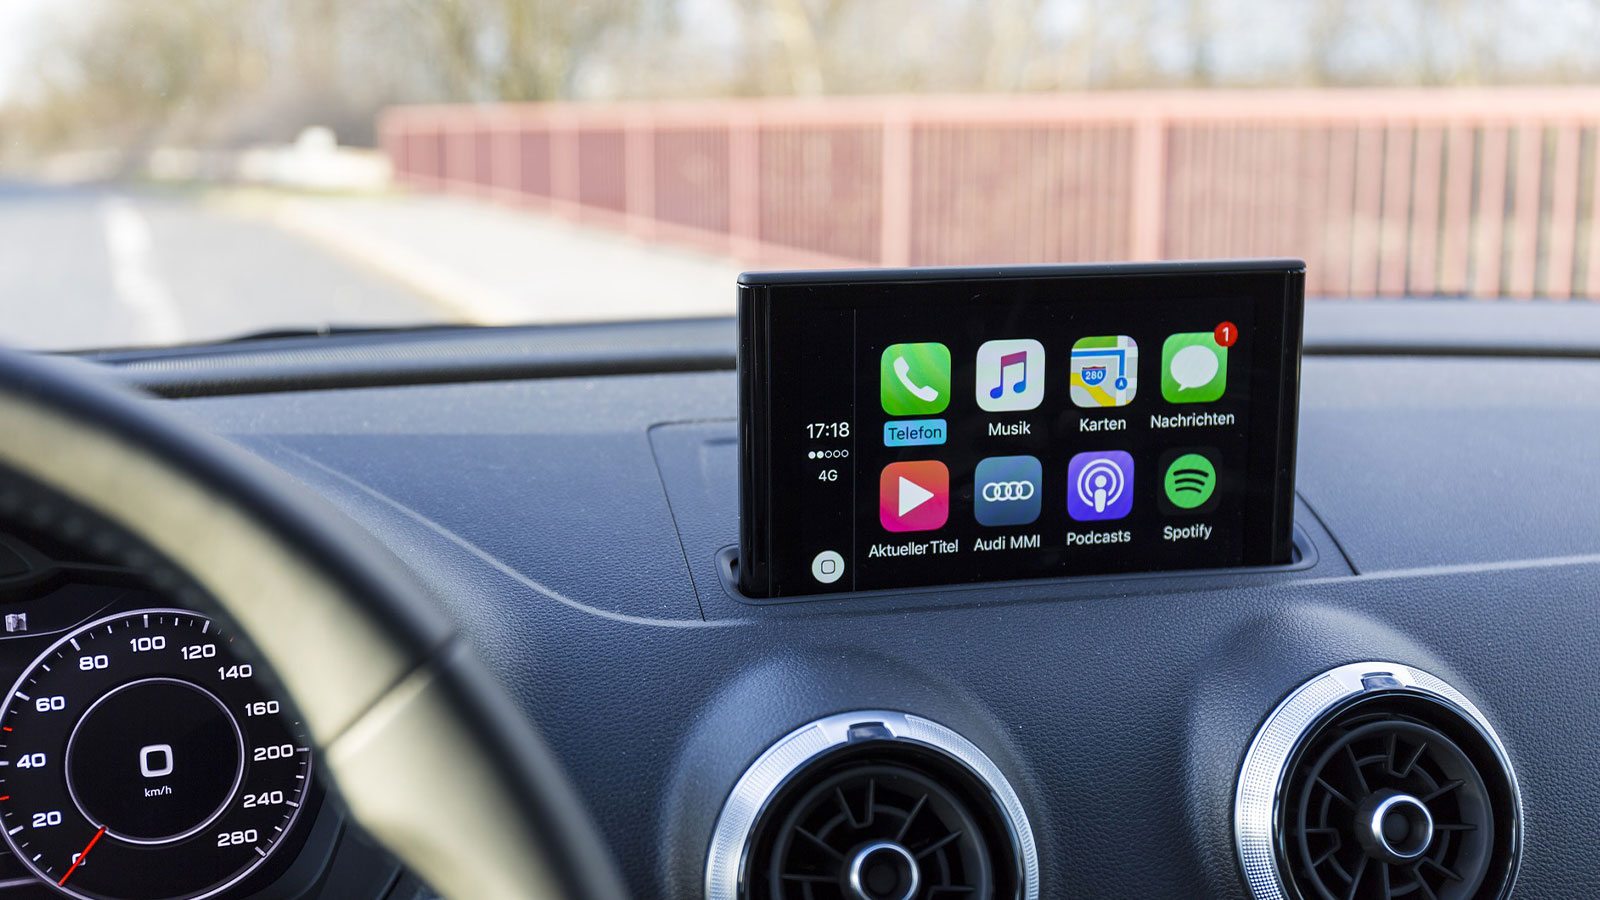 From pull to push: Why Apple CarPlay and Android Auto drive automotive User Experience to a new level